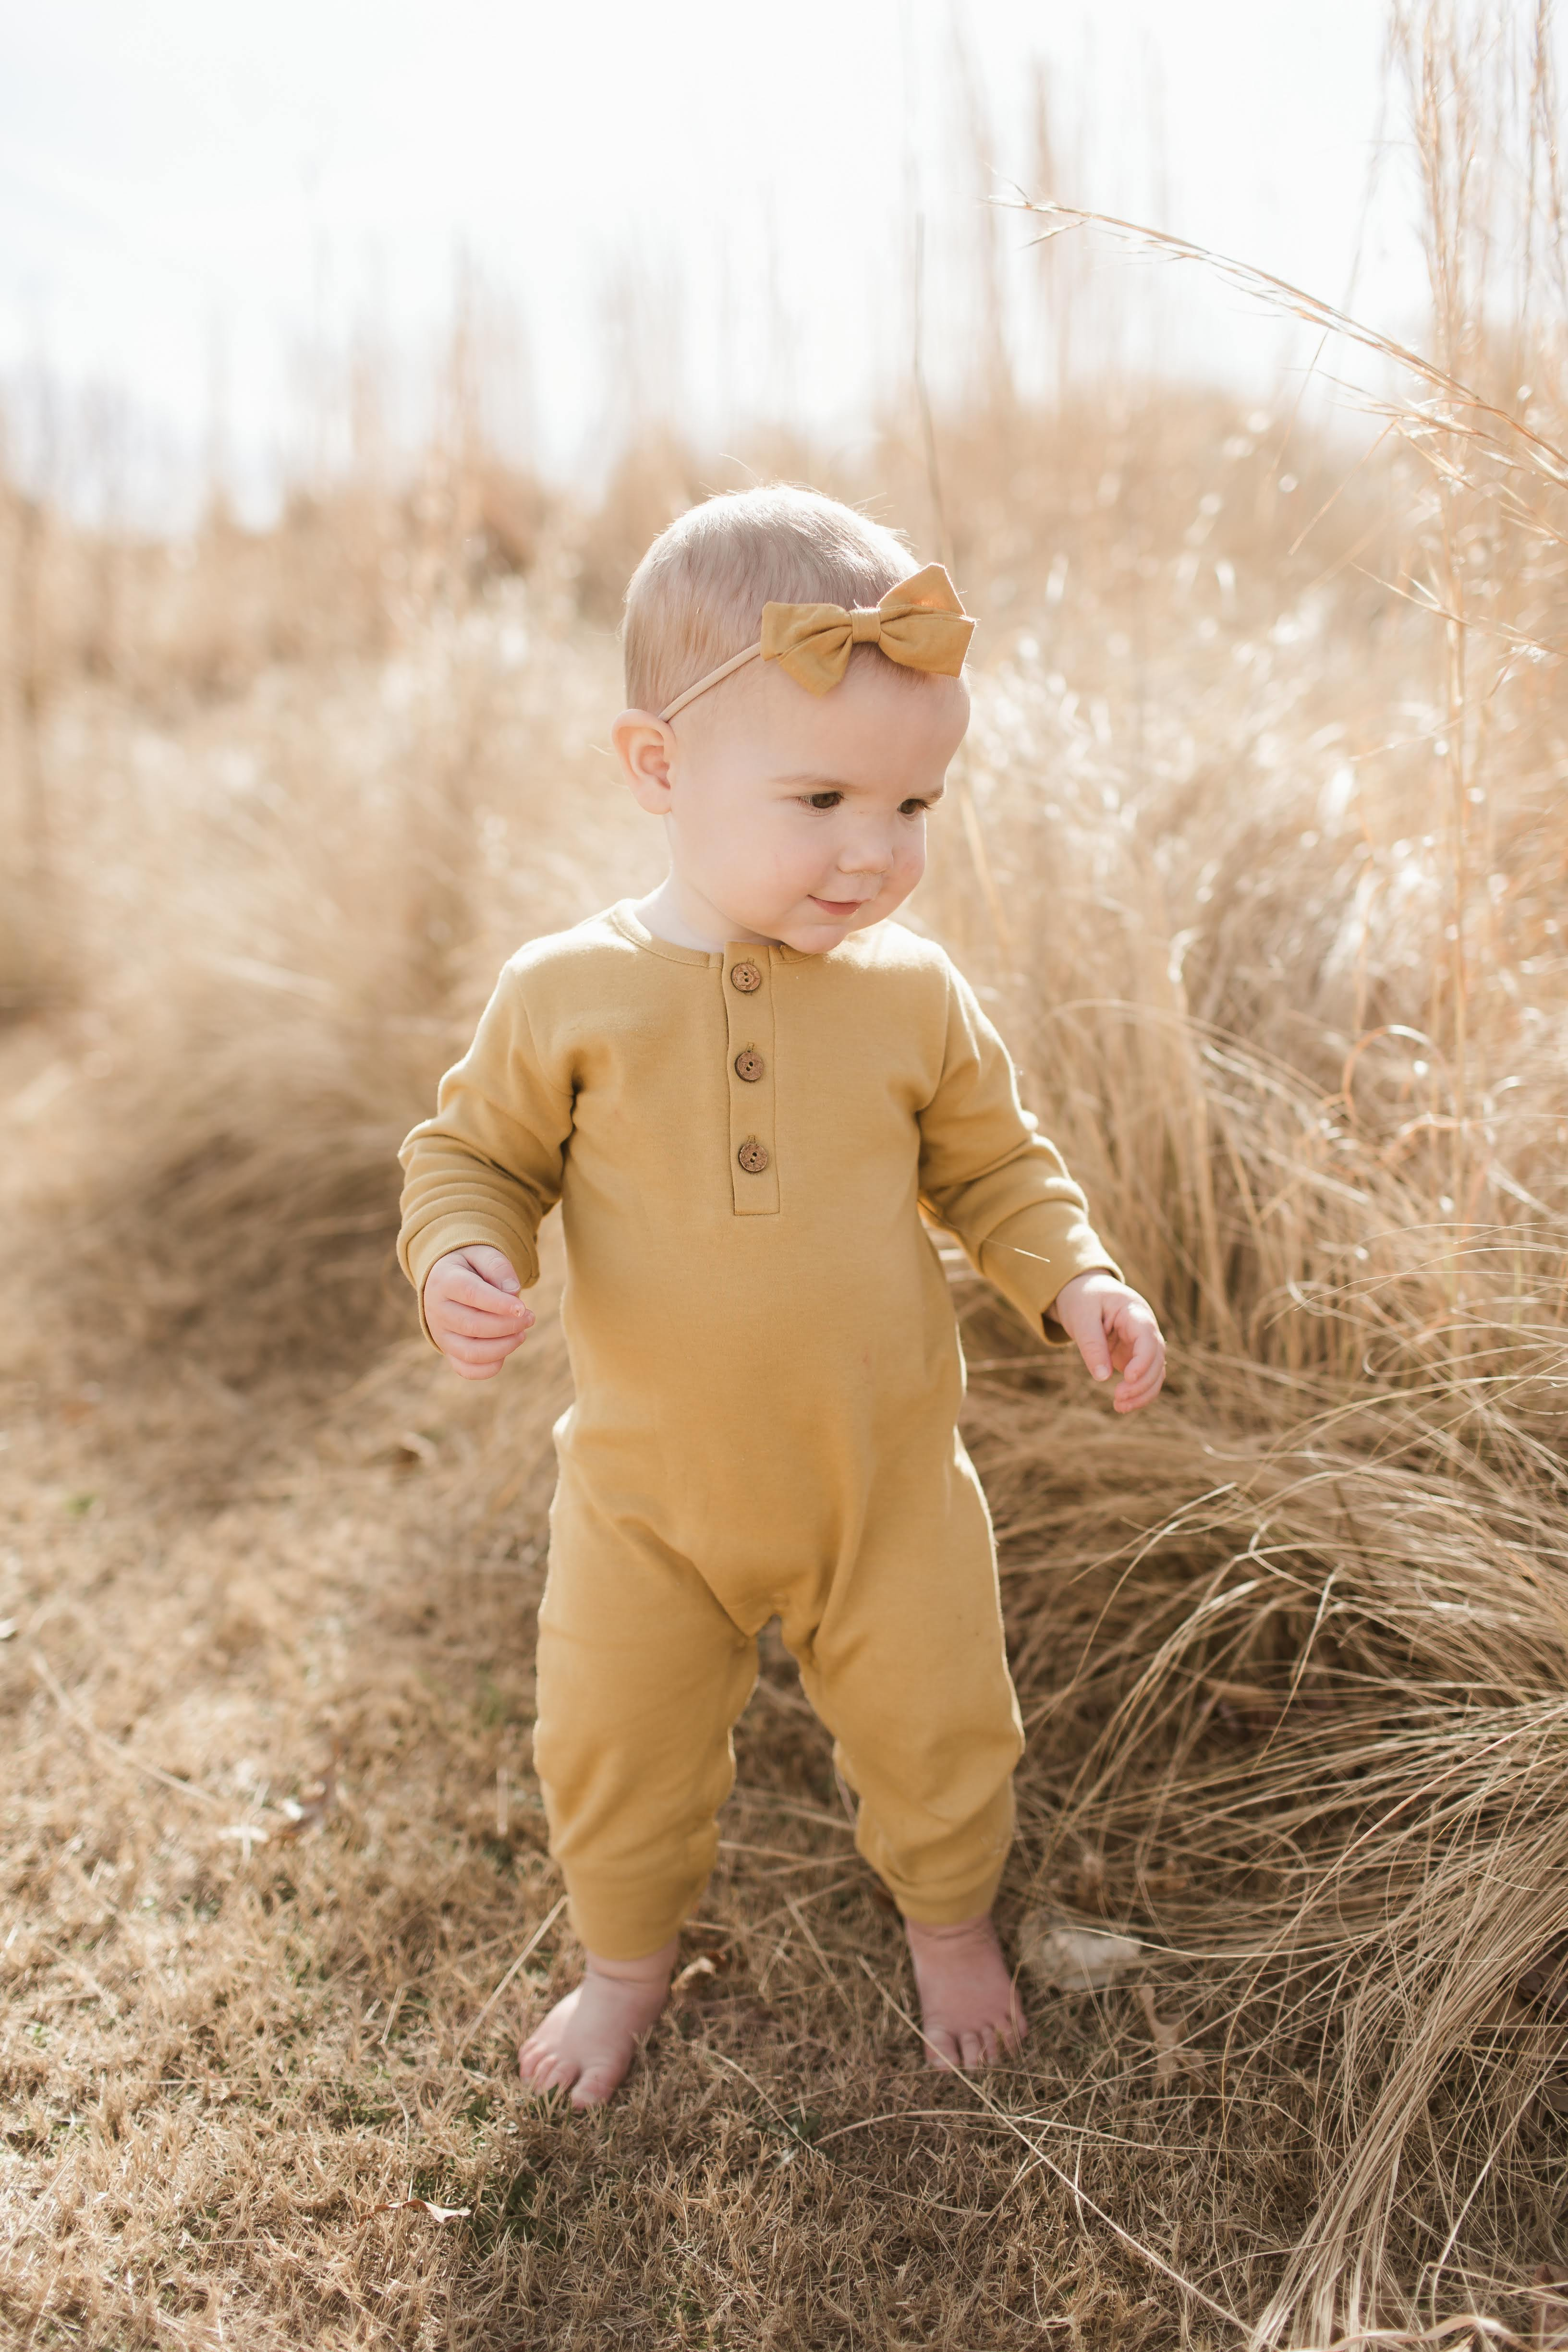 Organic baby clothes, Organic baby clothes brand, Affordable baby clothes, Soft baby clothes, Newborn baby clothes, modern organic baby clothes, baby rompers, kimono knotted gown, knotted baby gown